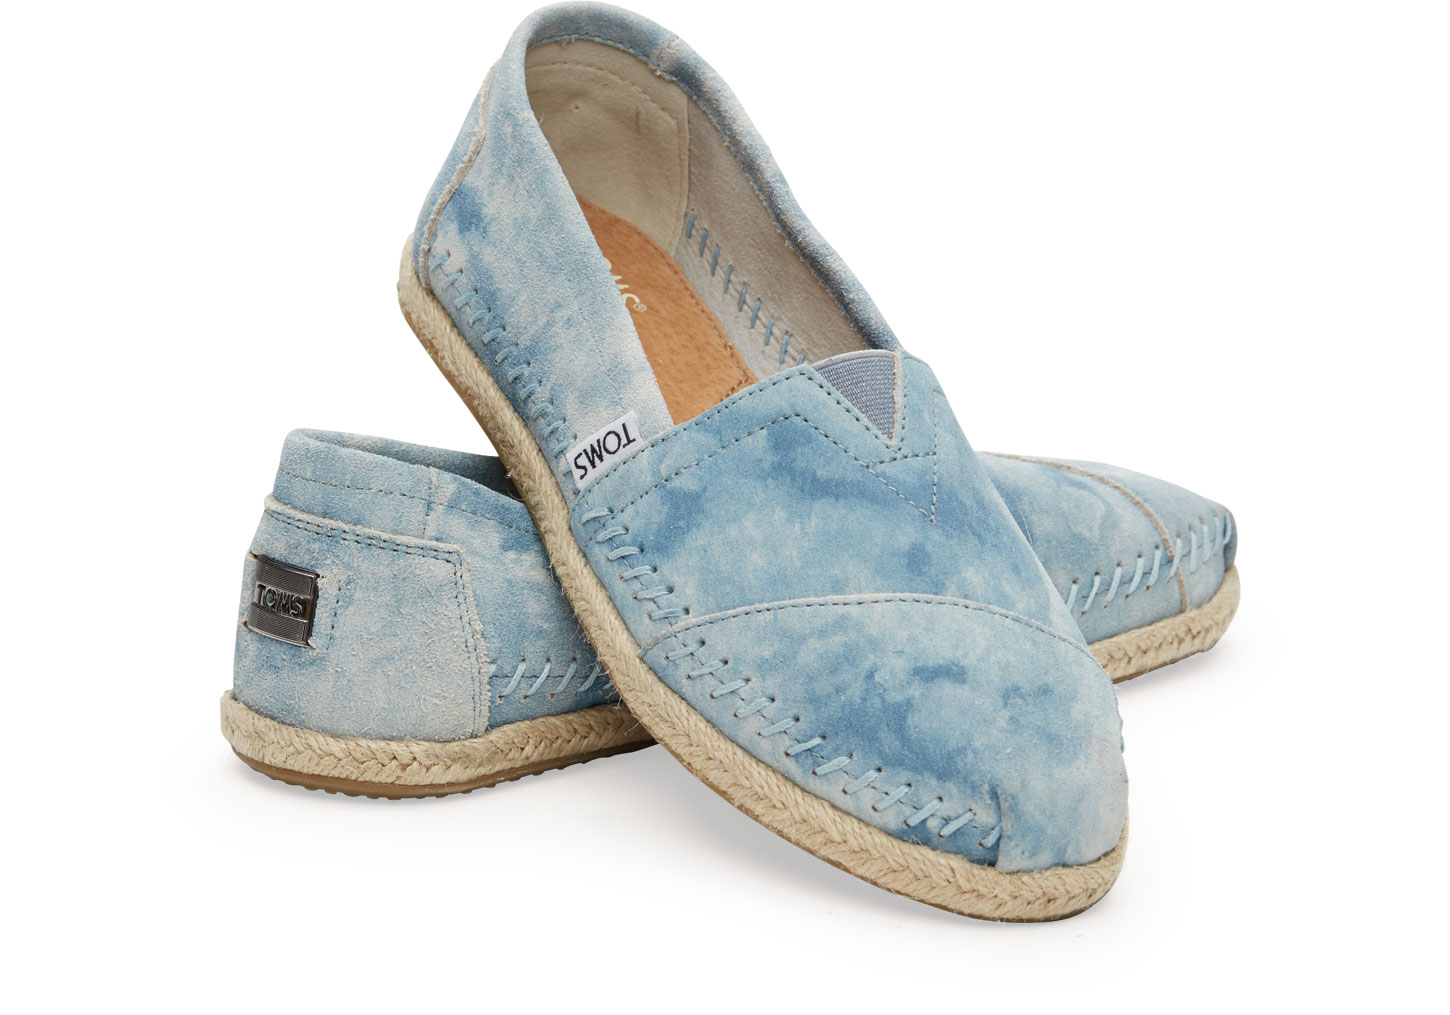 Lyst - Toms Blue Washe...